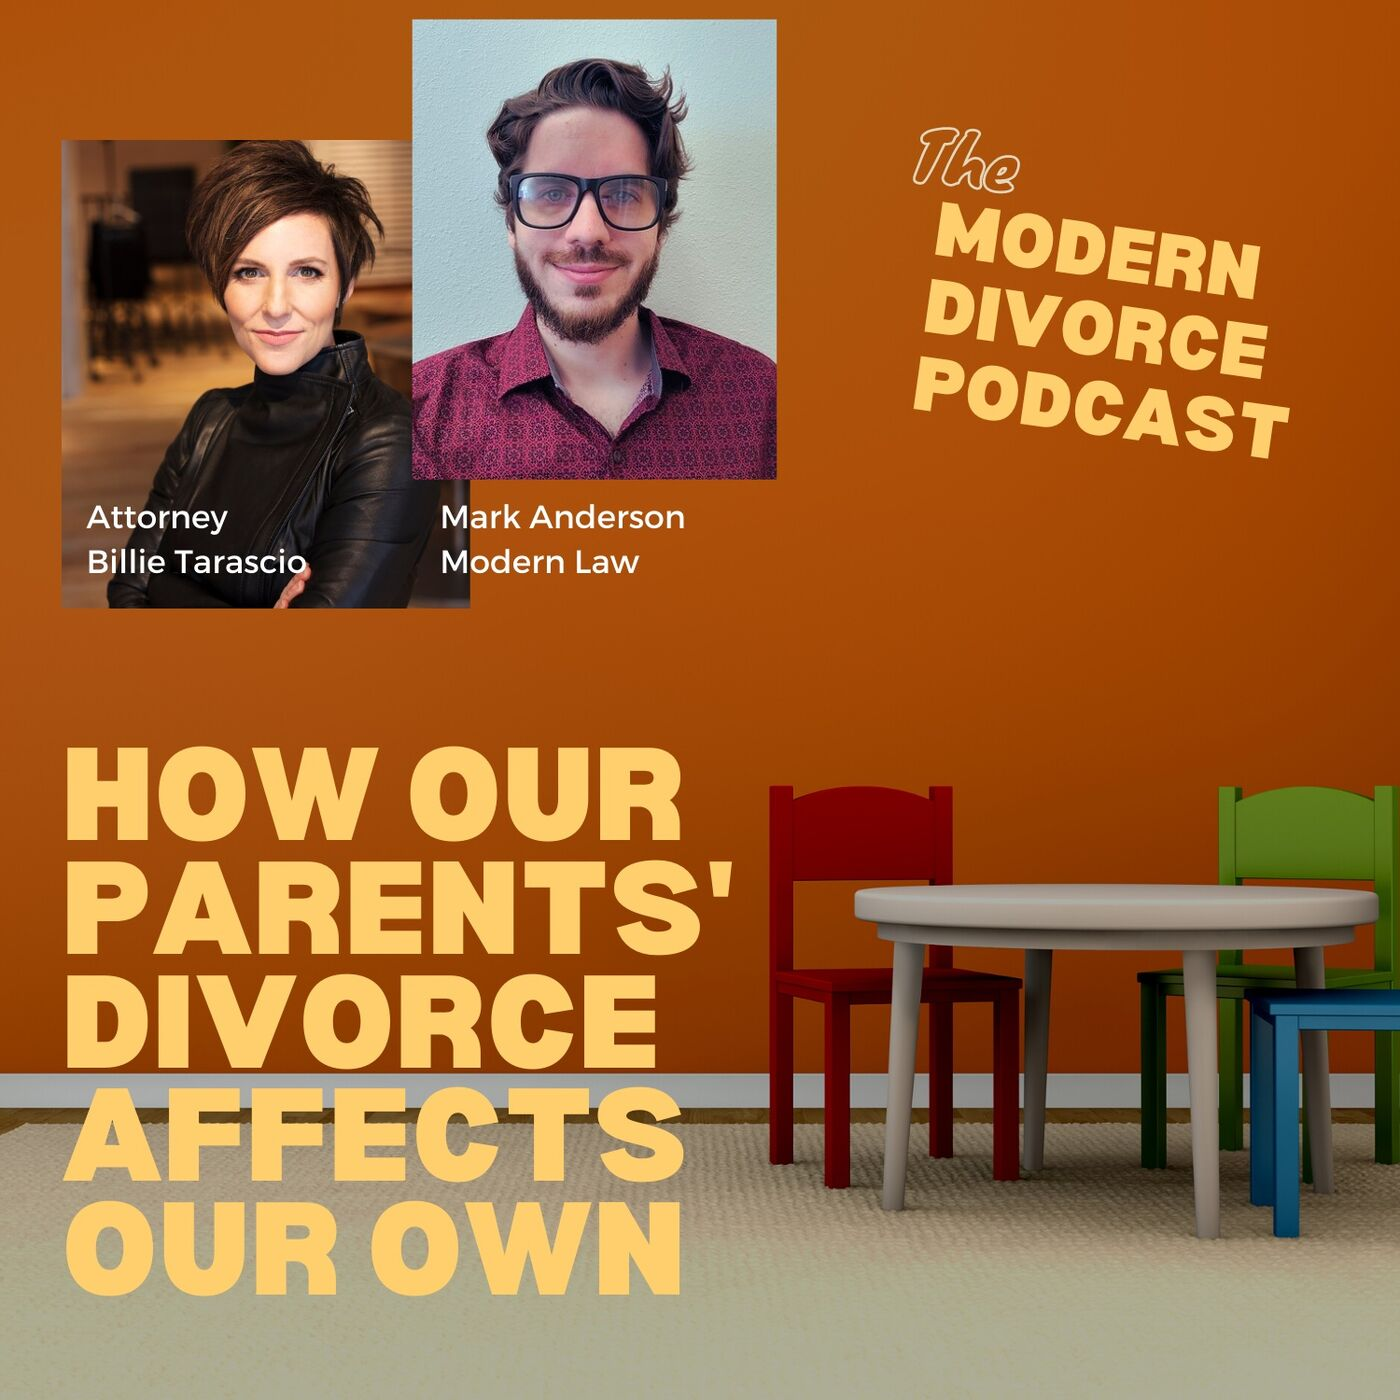 How our parents' divorce affects our own